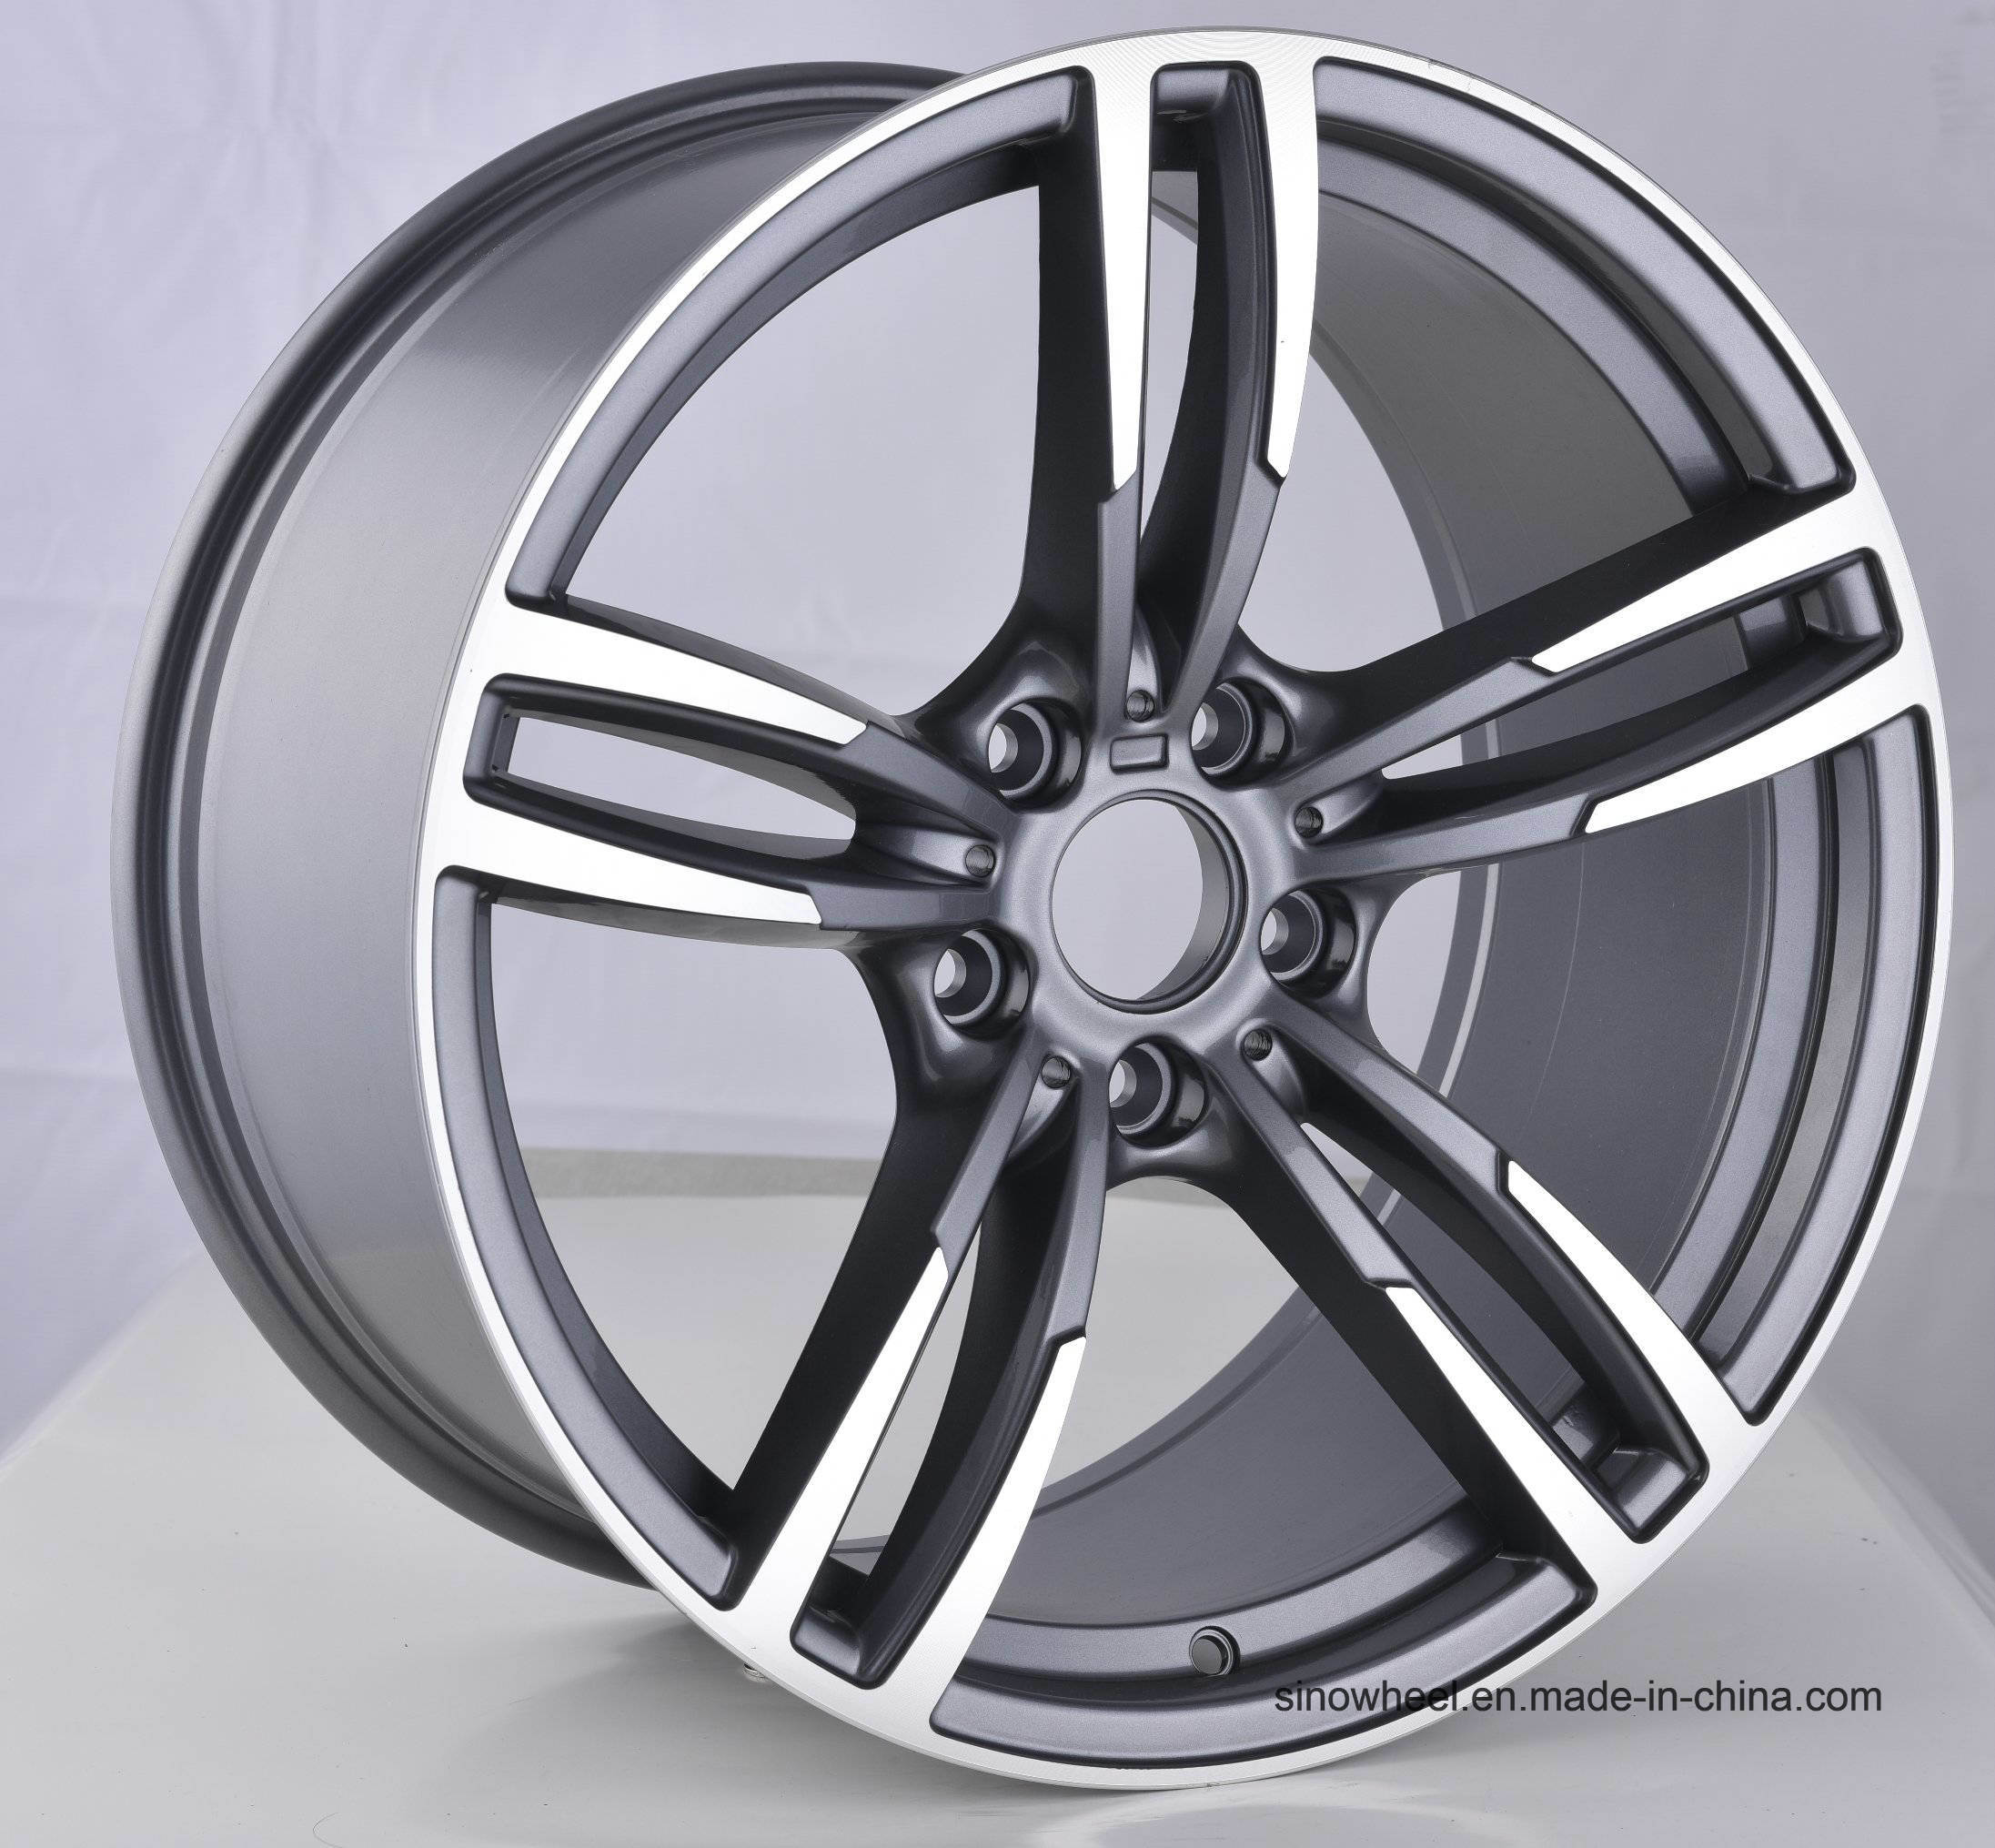 China 19x8 5 M3 Replica Alloy Wheel Rim For Bmw Photos Pictures